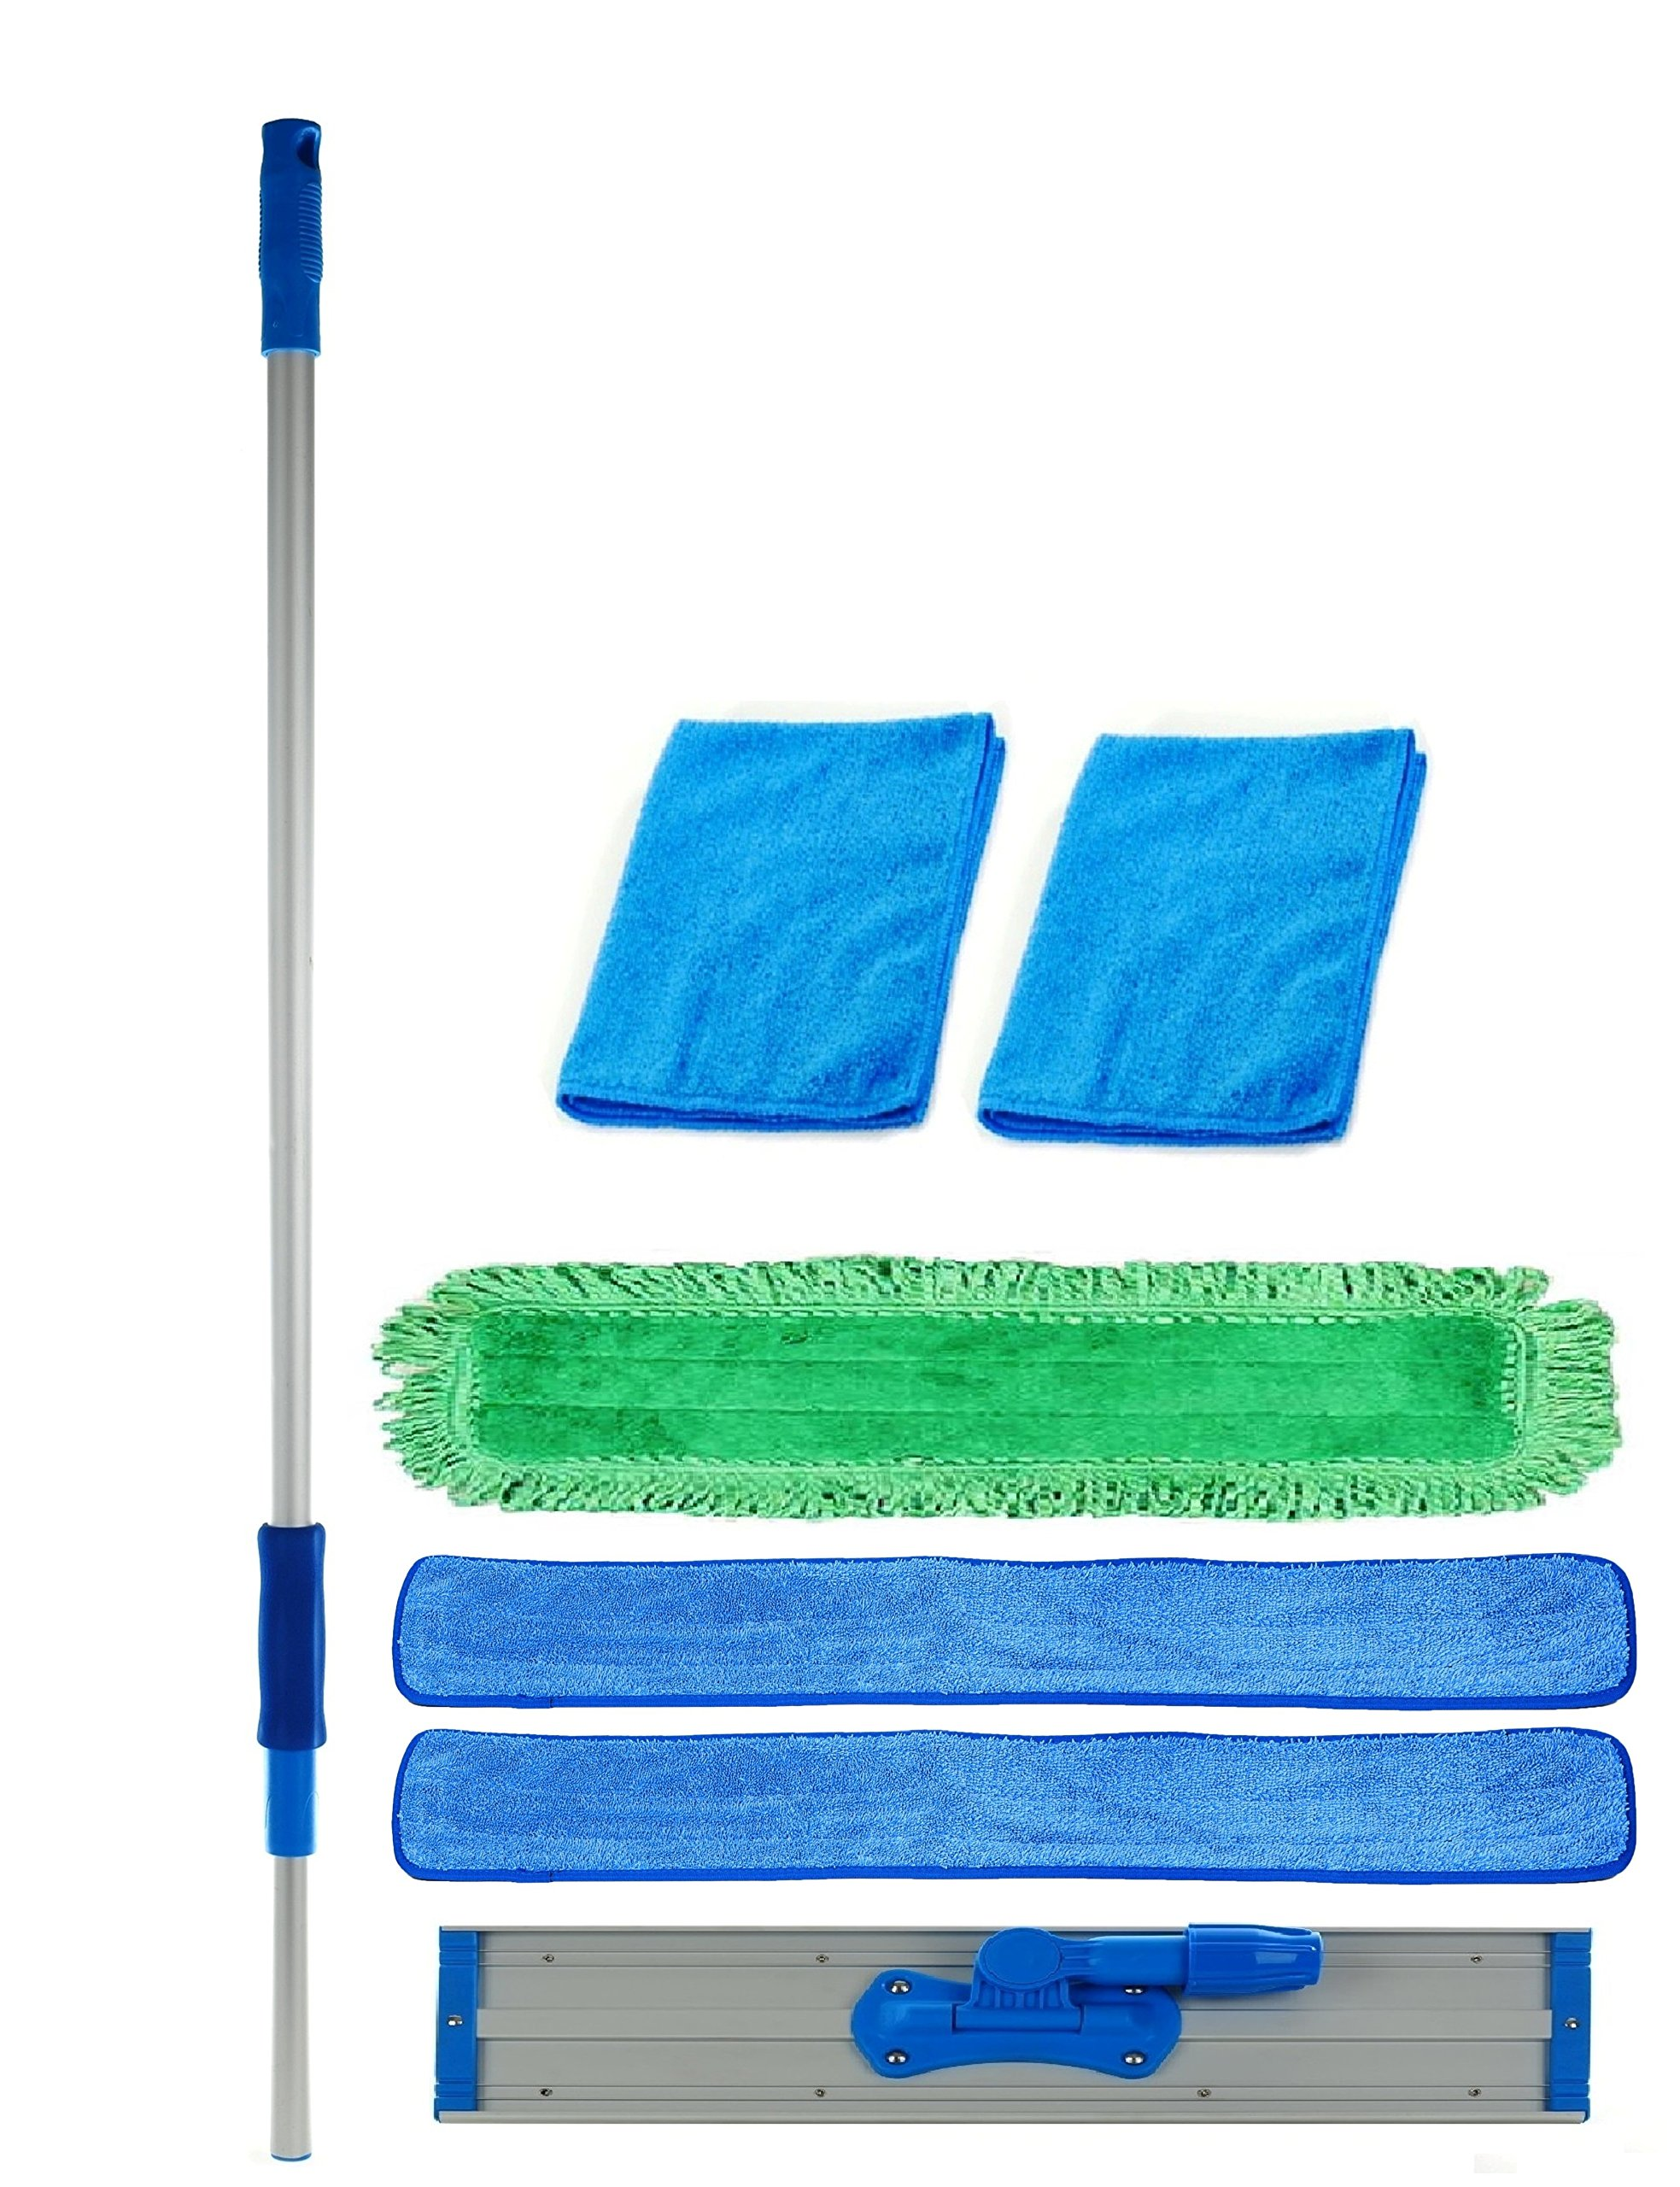 36 inch Professional Commercial Microfiber Mop With Three 36'' Microfiber Mop Pads and 2 Bonus Microfiber Towels